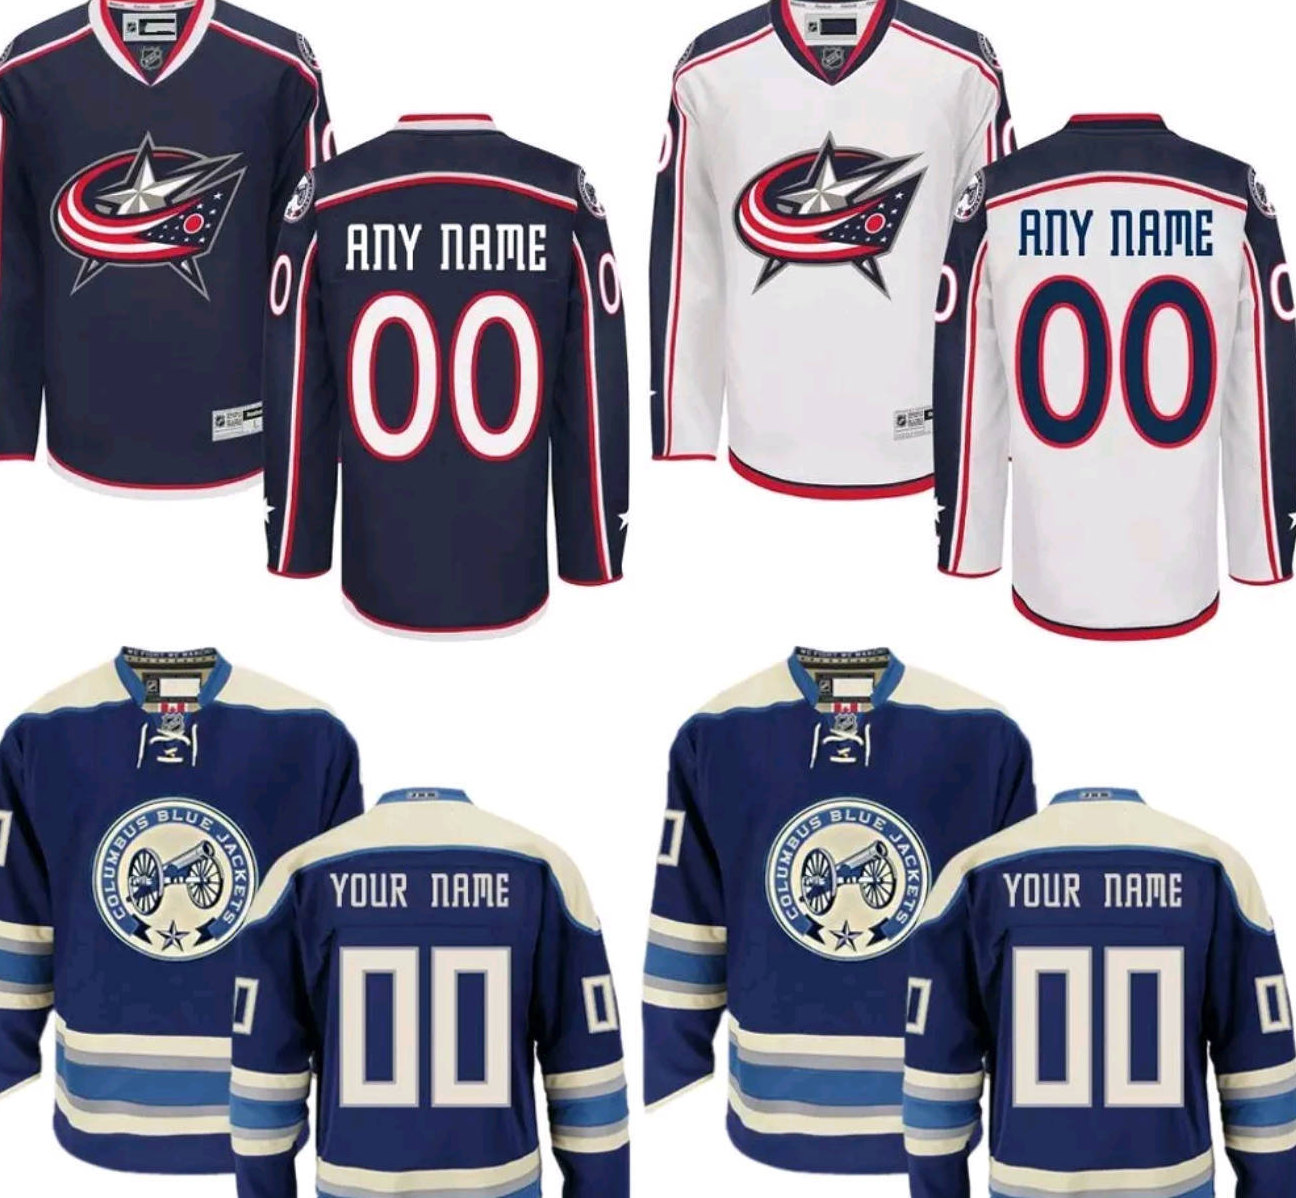 online store 23671 81013 Columbus Blue Jackets Customizable Mens/Women/Youth Jersey M-XXXL Jerseys  Come Plain or Customized With Any Name/Number, Including Yours sold by ...